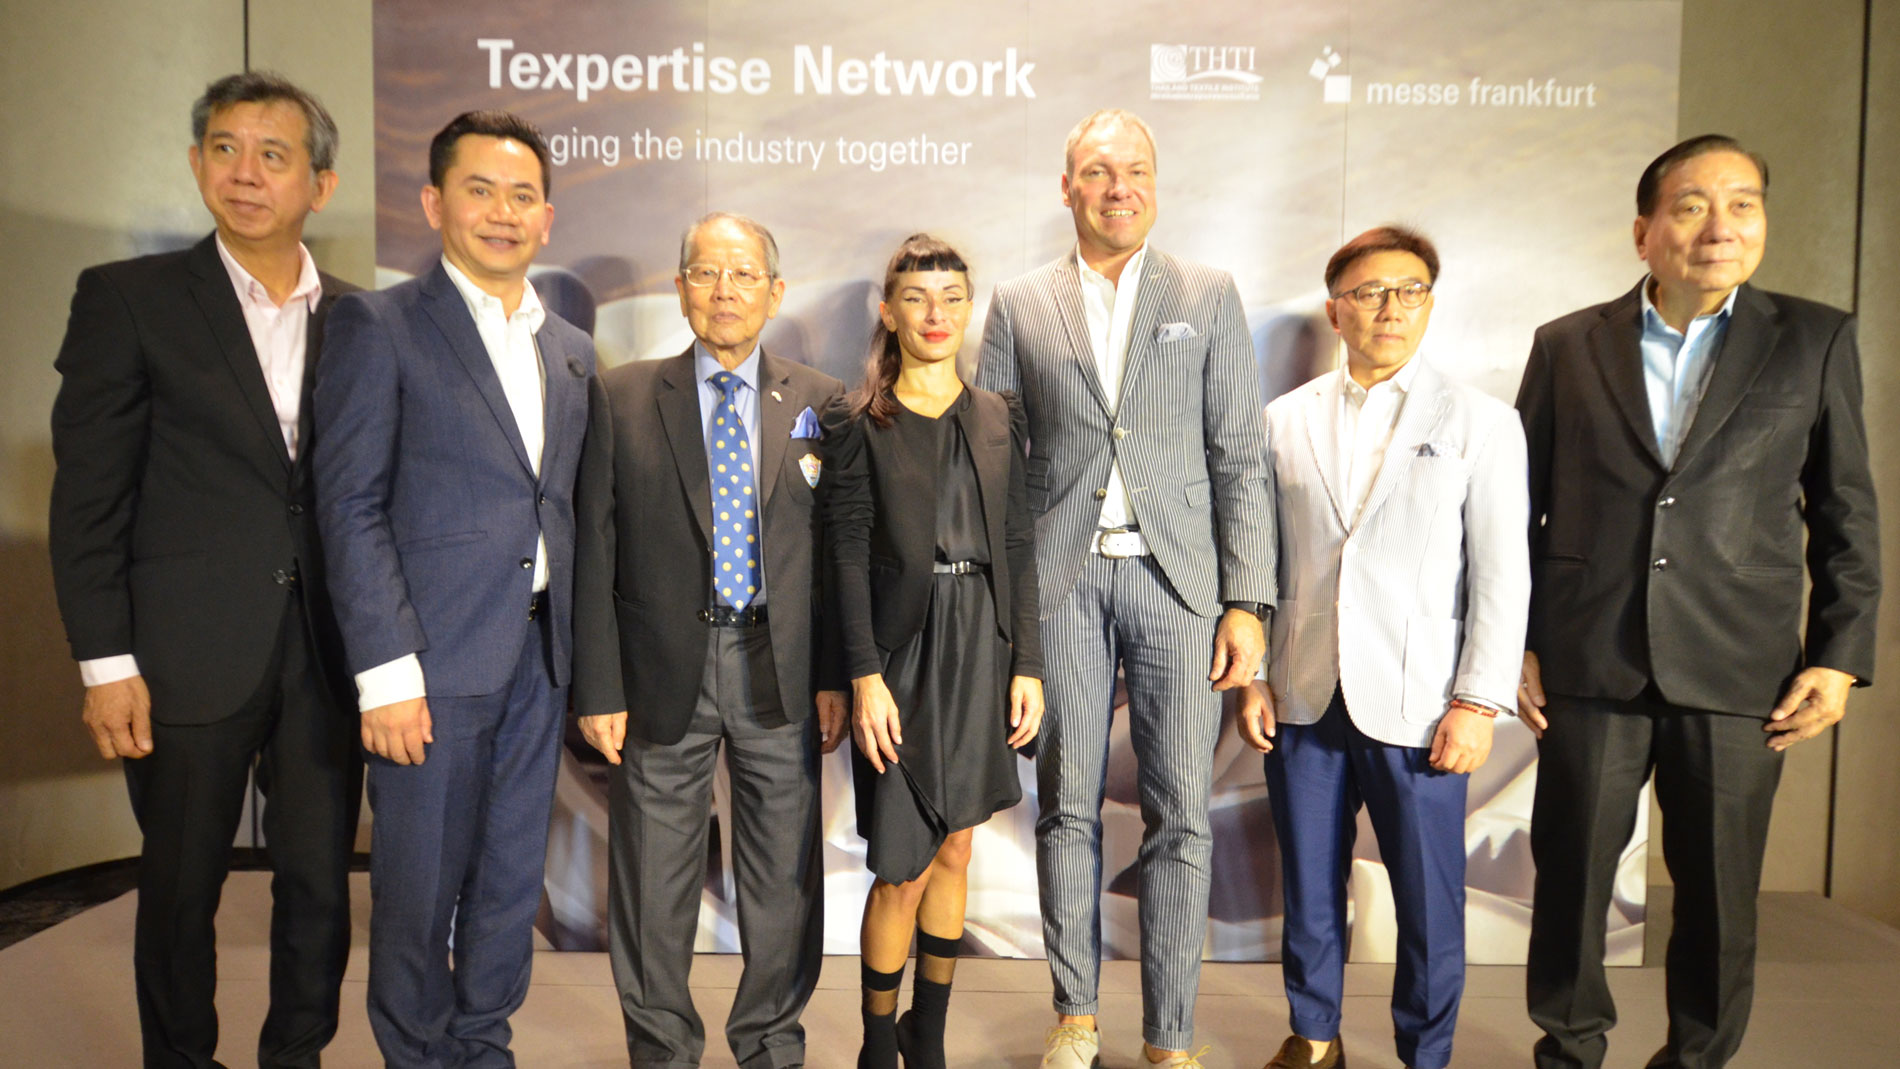 Texpertise Network Day